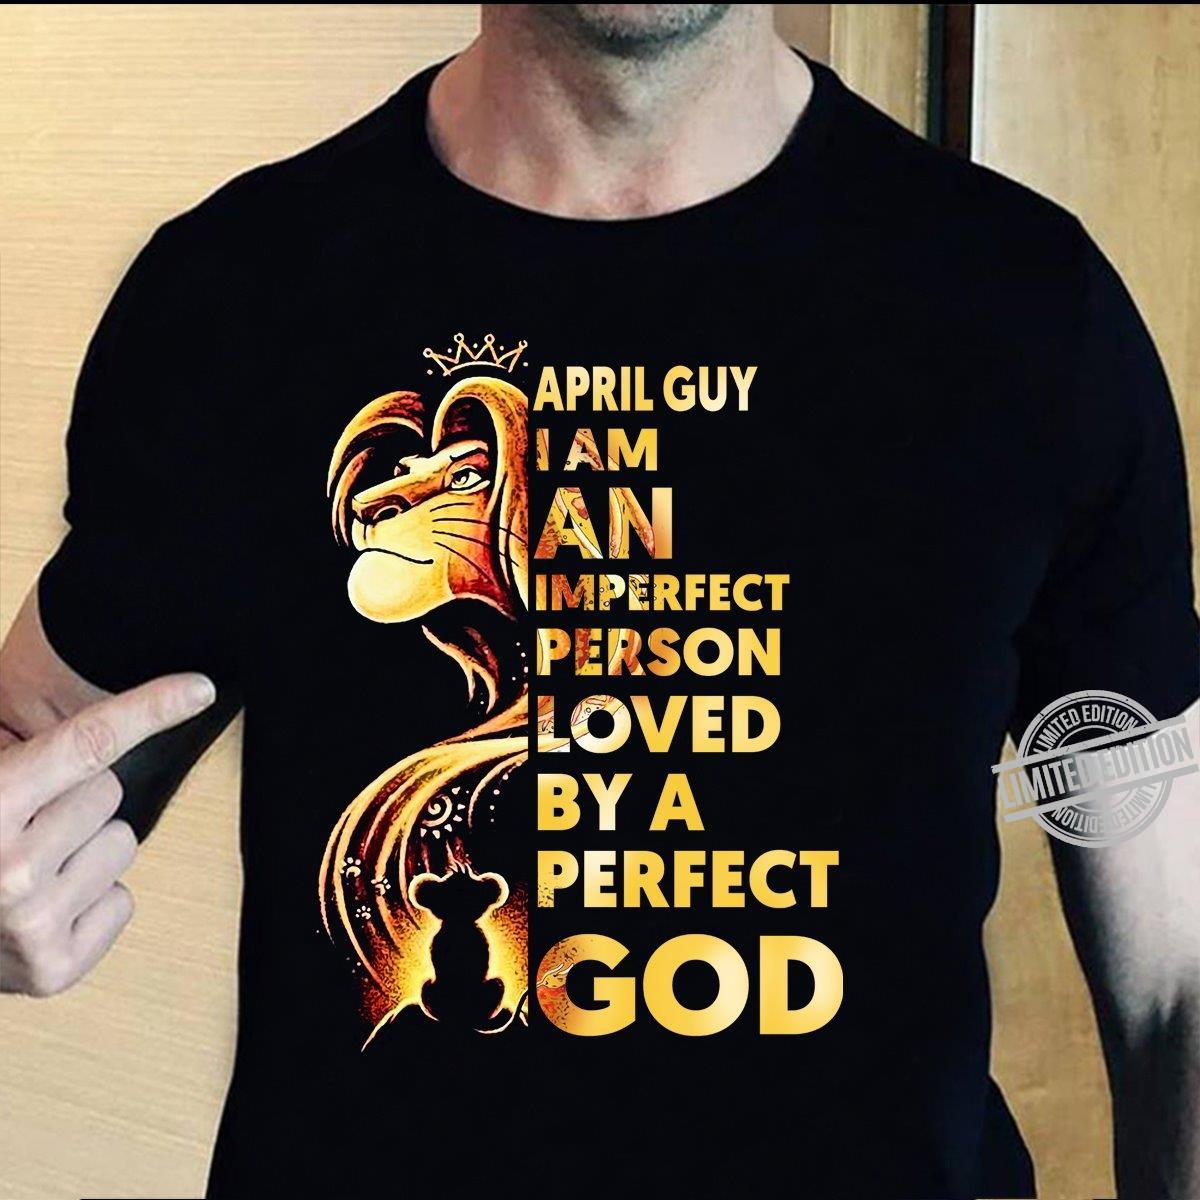 April Guy I Am An Imperfect Person Loved By A Perfect God Shirt